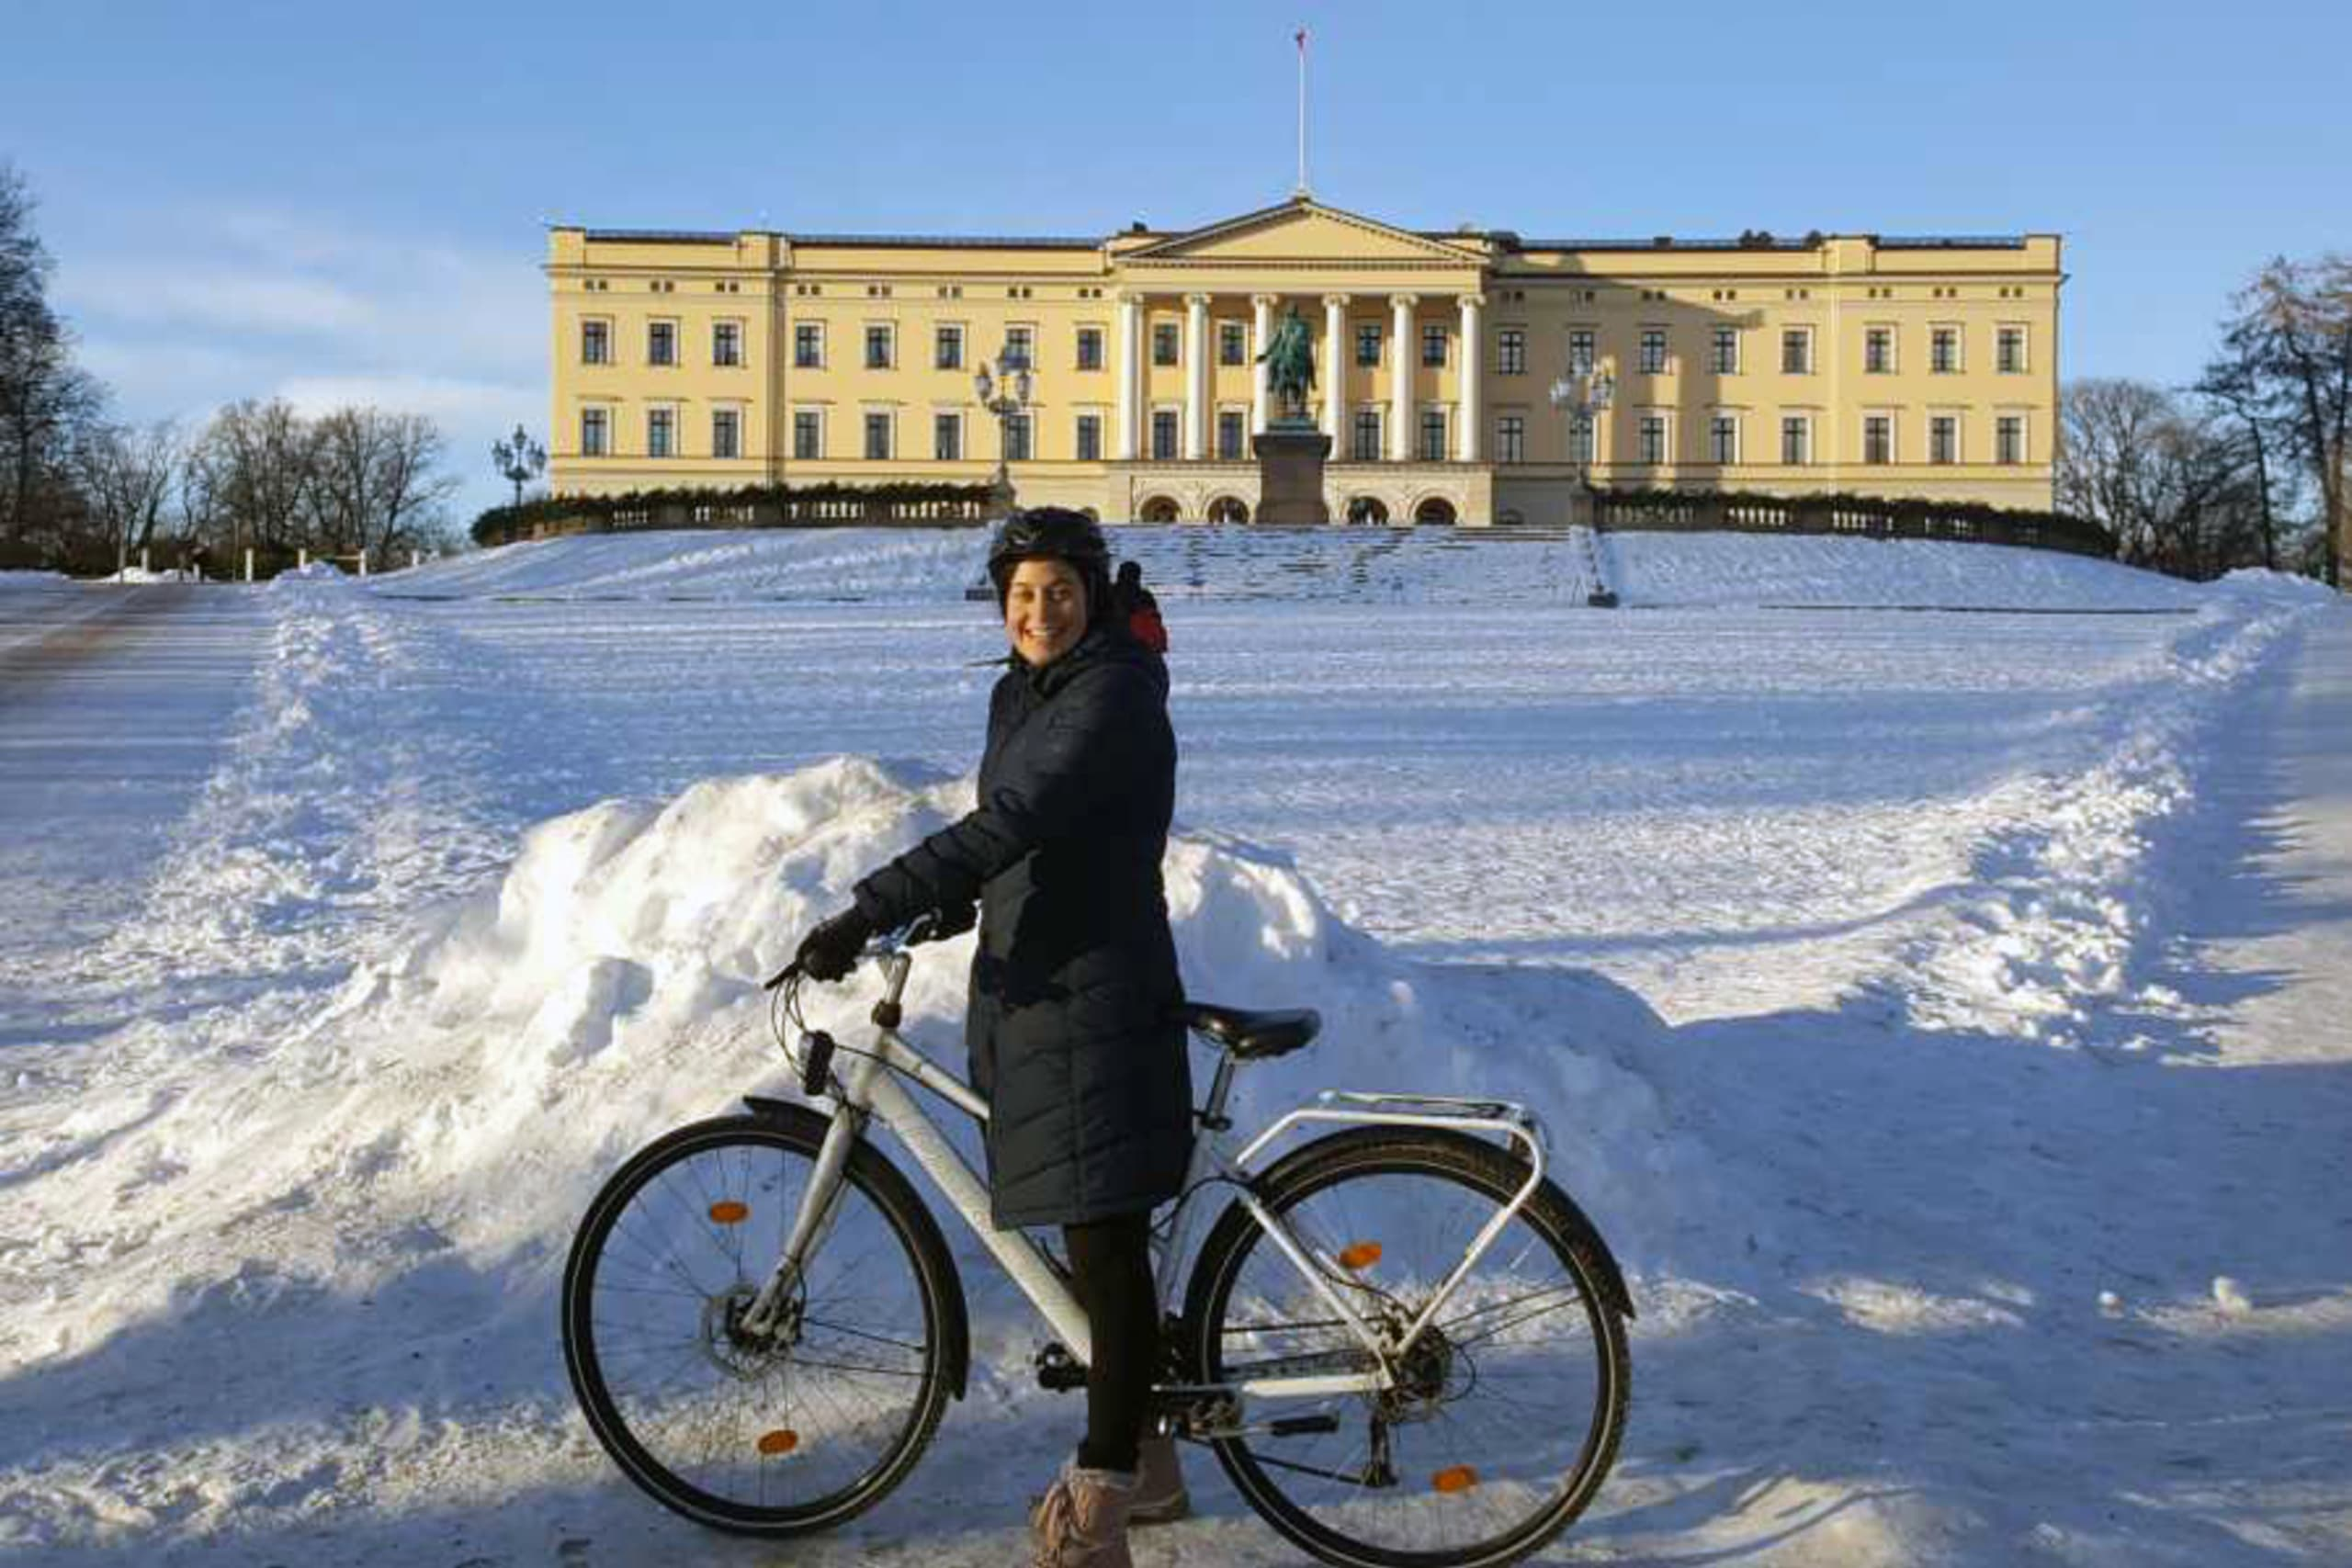 A woman smiling at the camera while biking in the snow in downtown Oslo. The King's Palace is featured in the background.